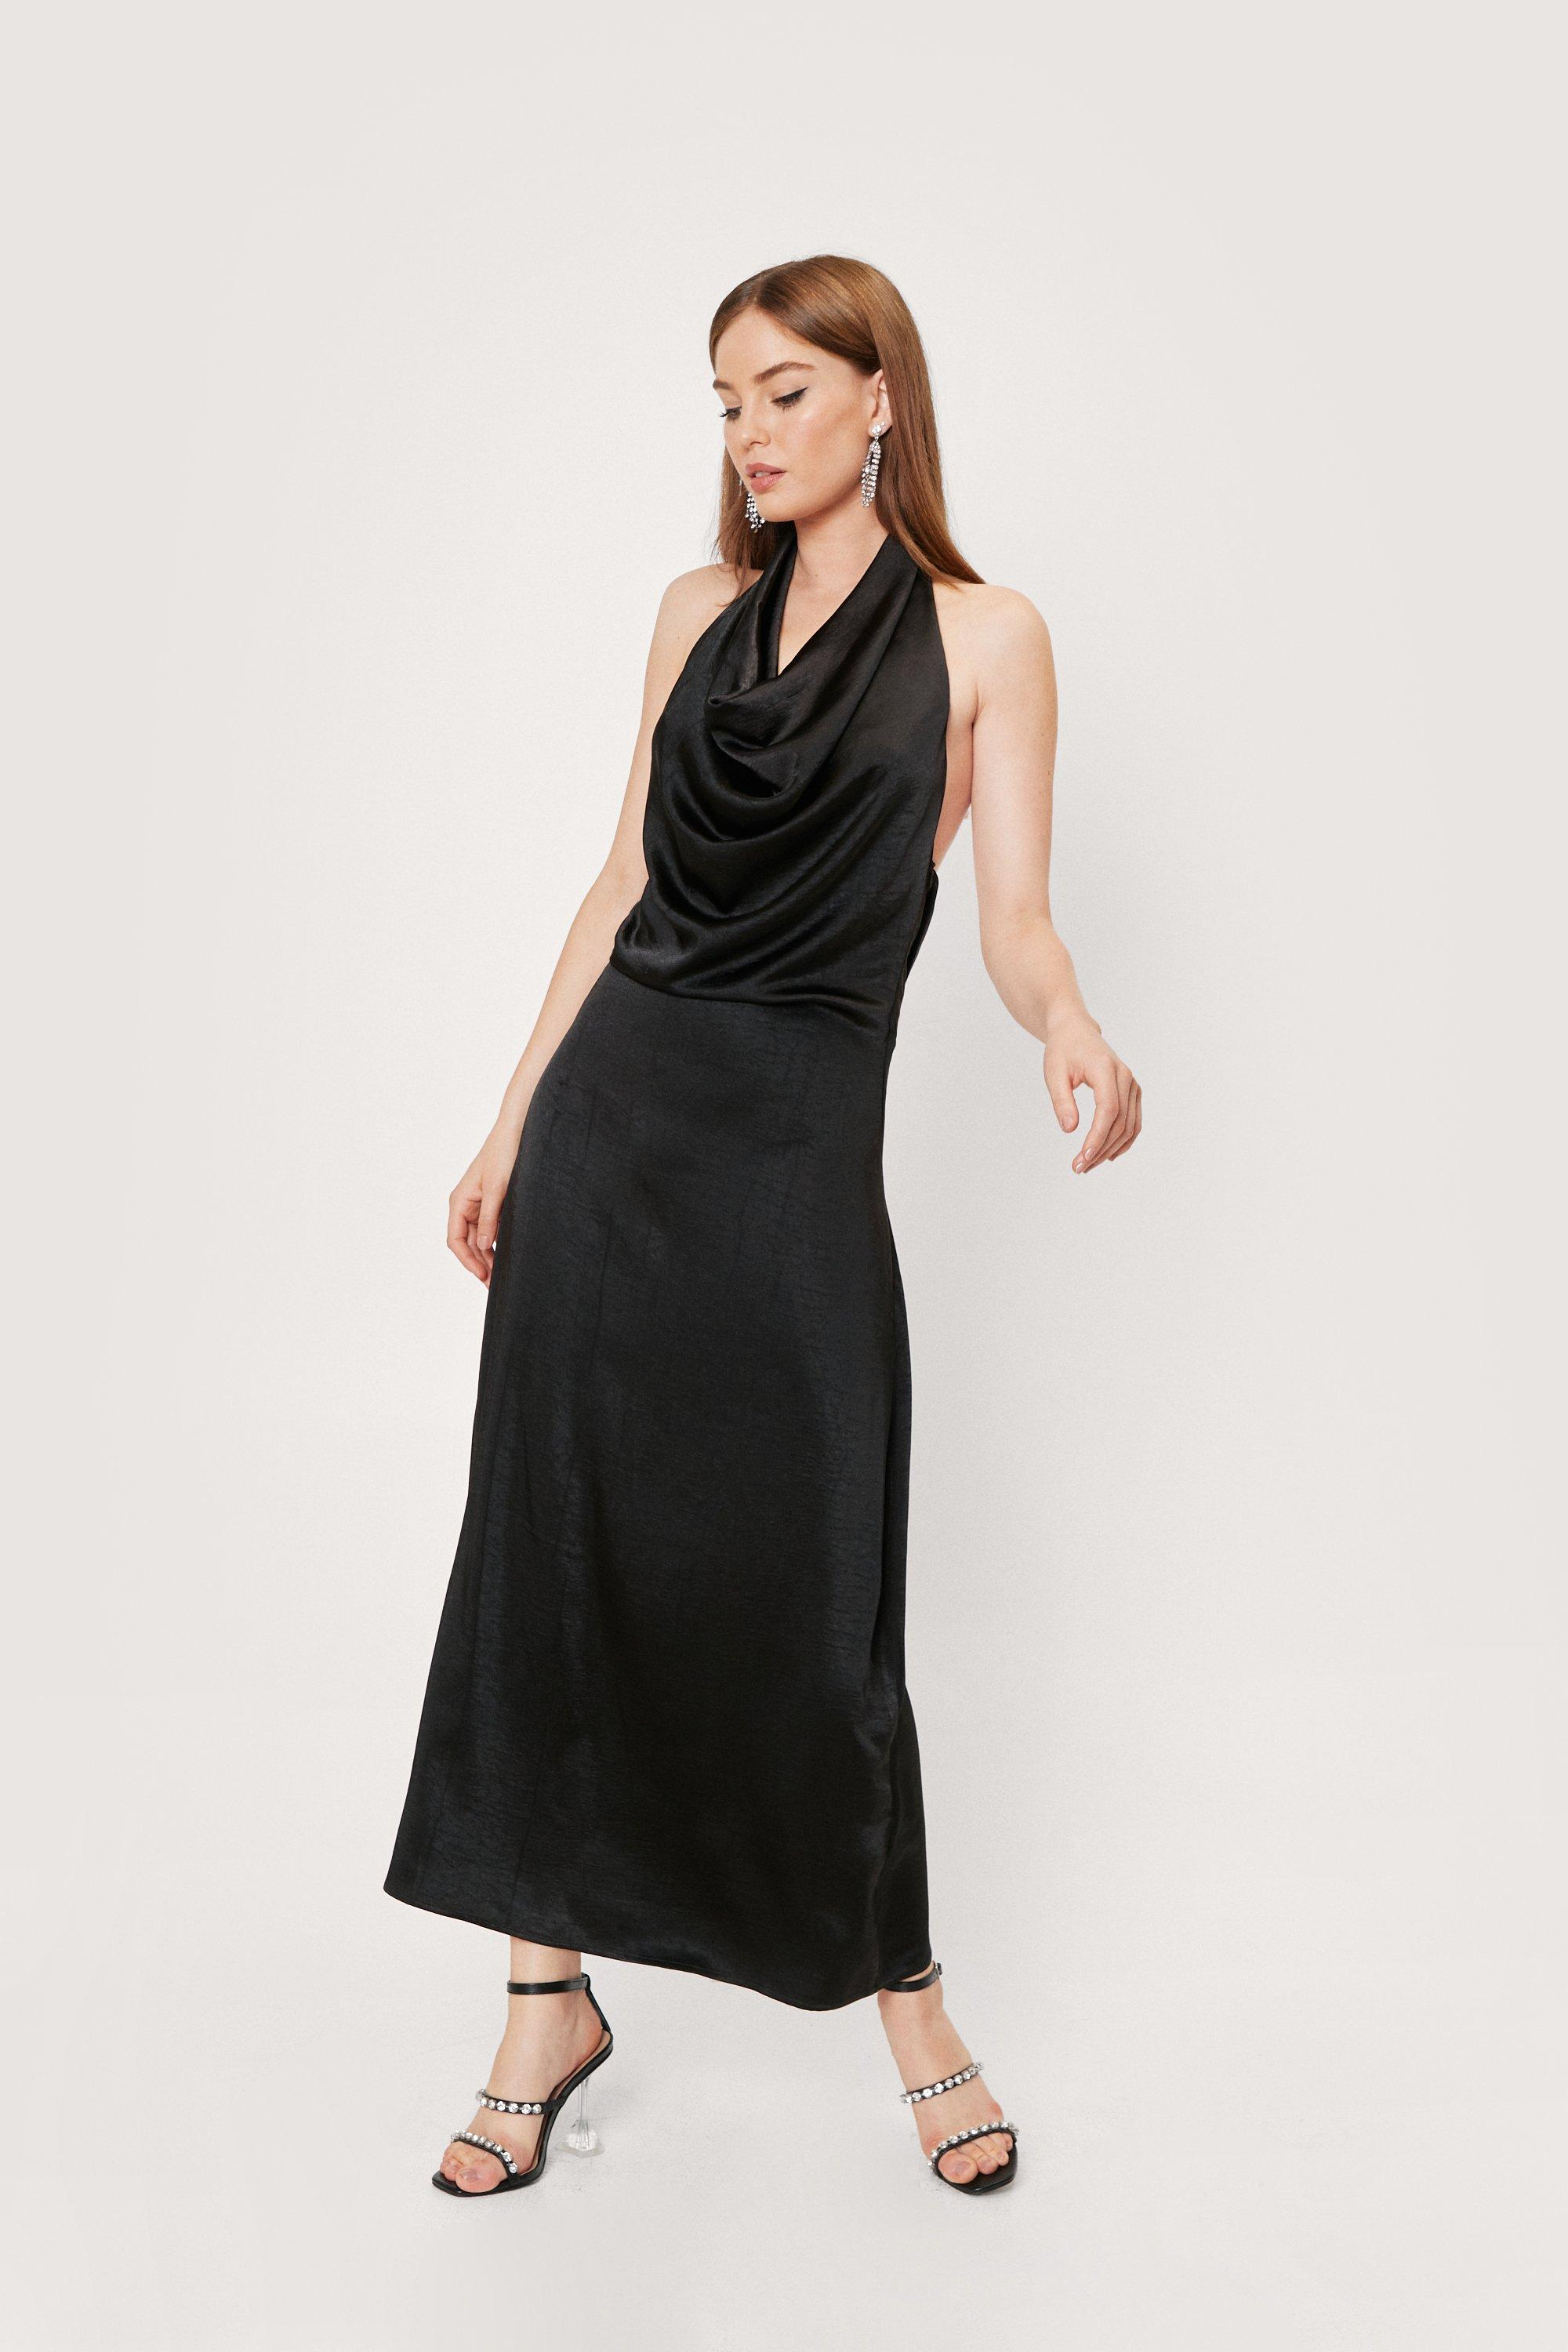 1970s Outfit Inspiration   70s Costume Ideas Womens Slinky Cowl Neck Backless Maxi Dress - Black - 10 $26.00 AT vintagedancer.com